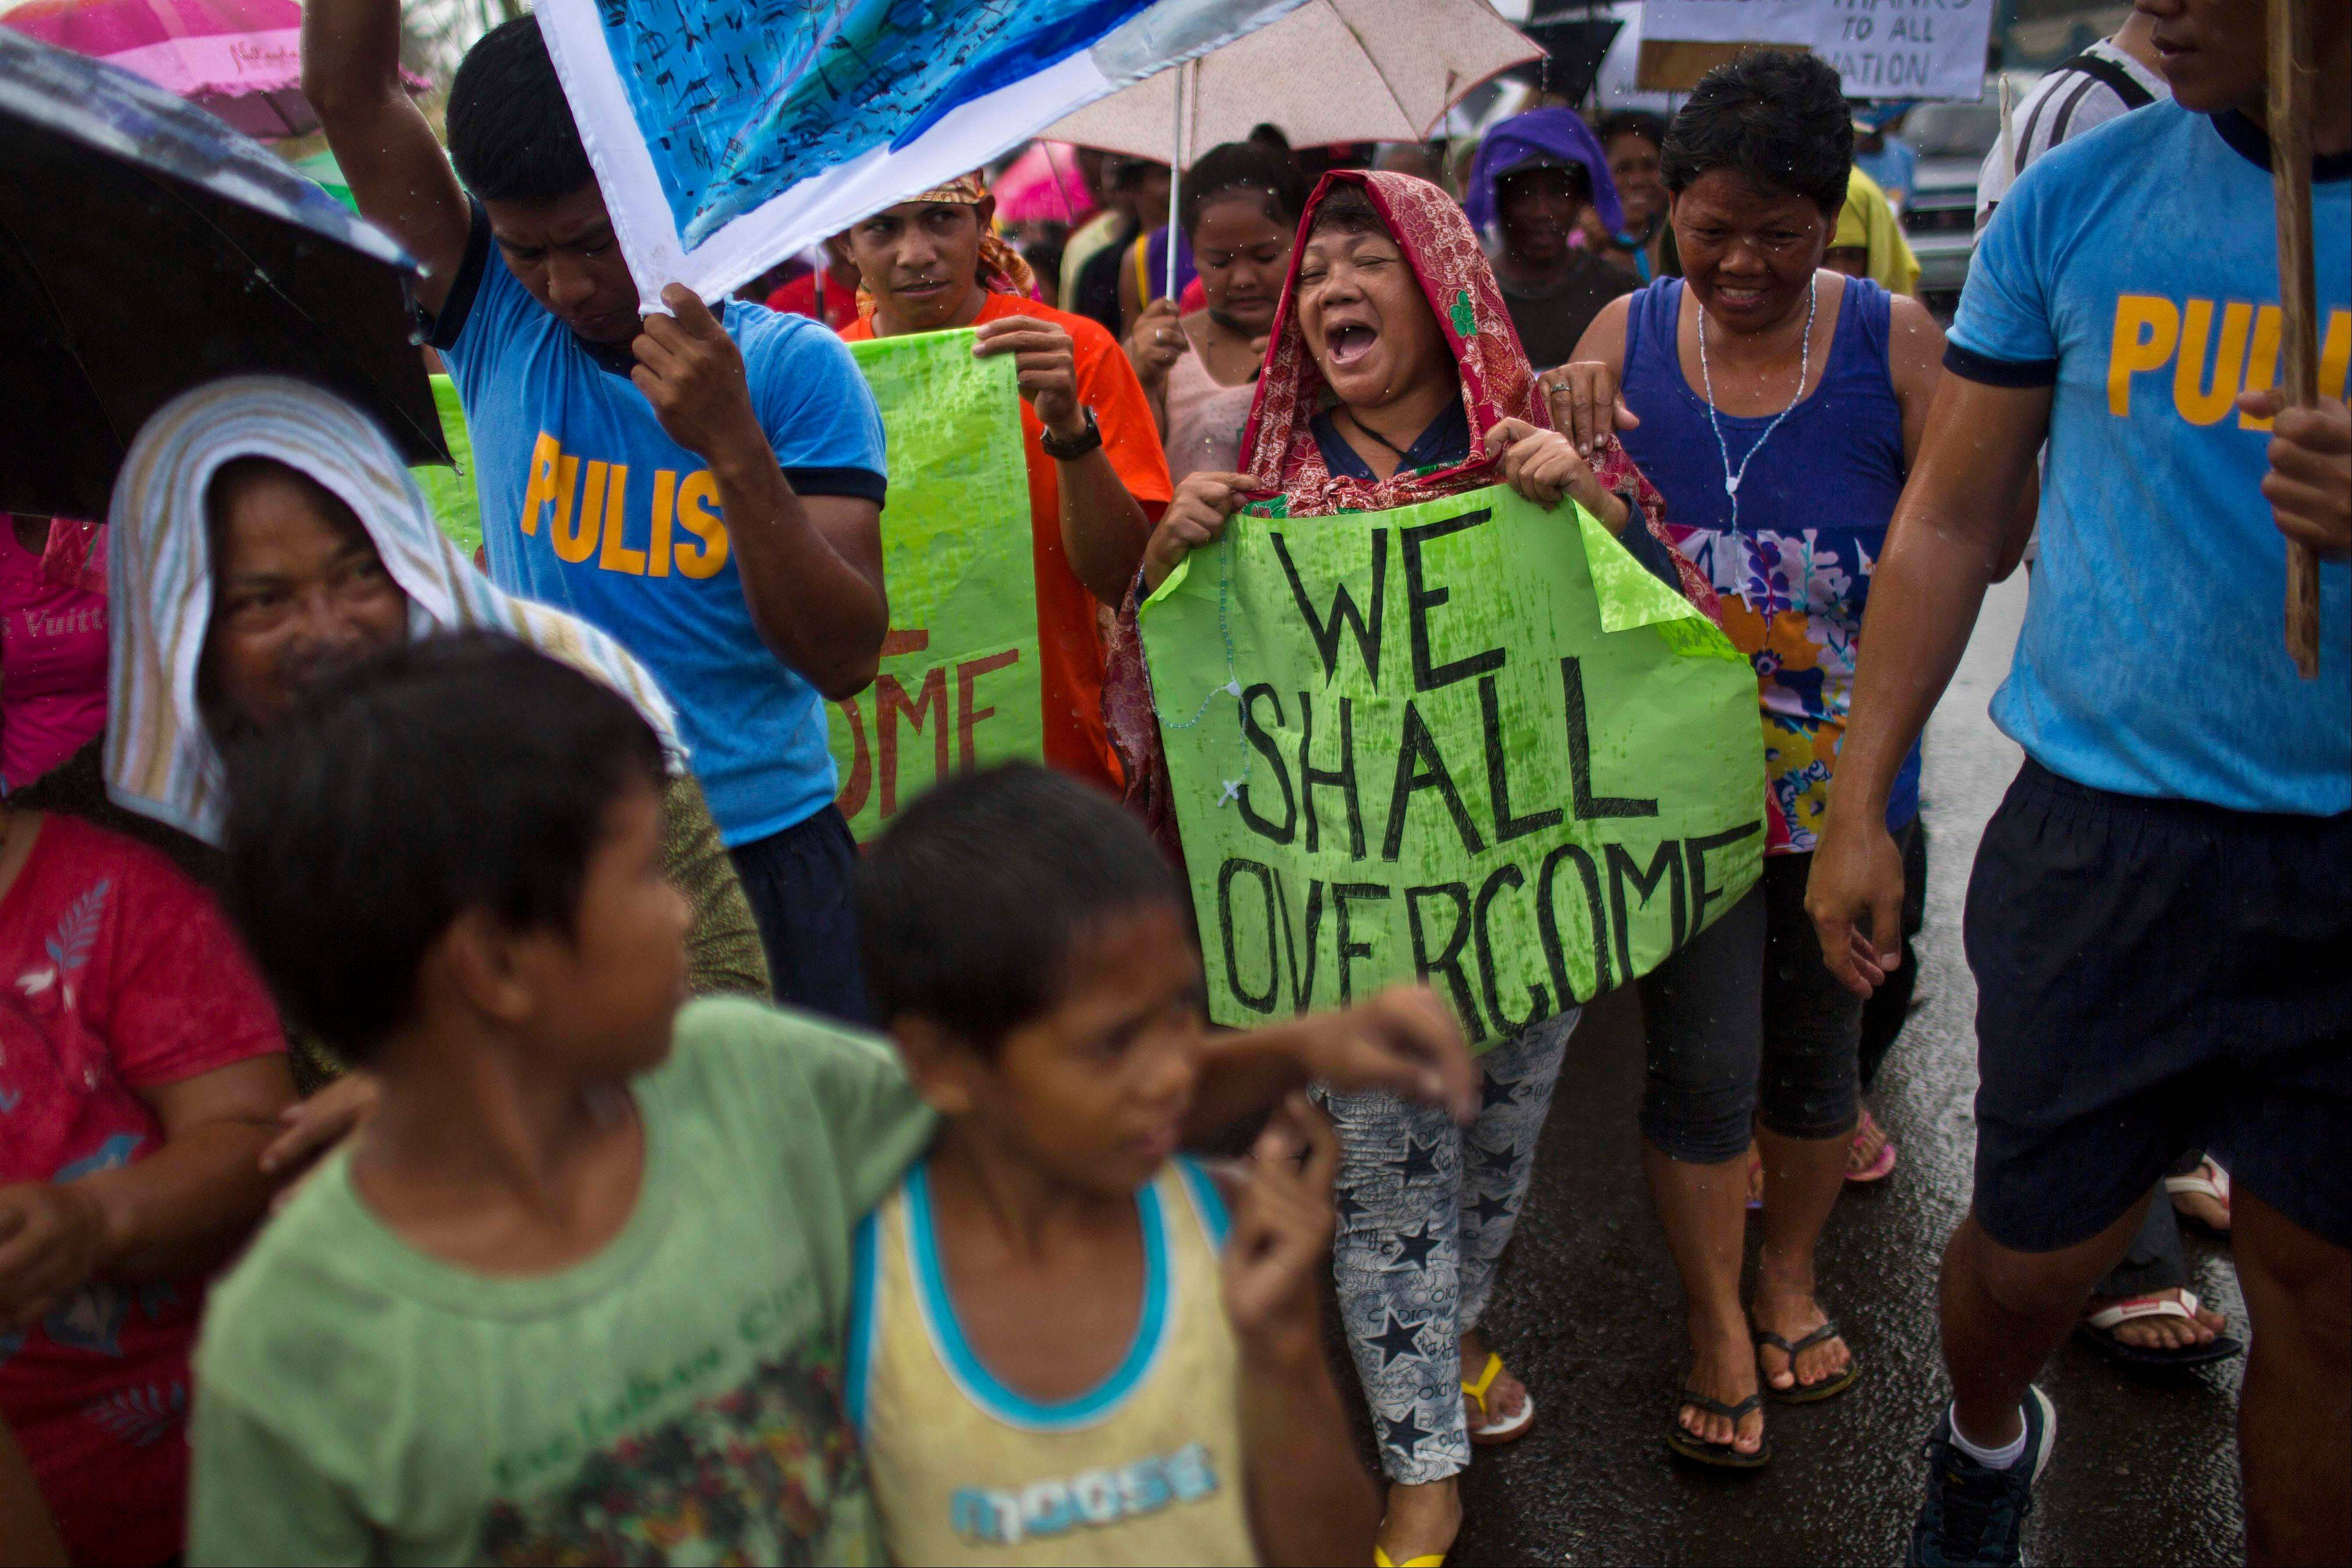 People march in the rain Tacloban, Philippines during a procession to call for courage and resilience among their Typhoon Haiyan survivors on Tuesday Nov. 19, 2013.